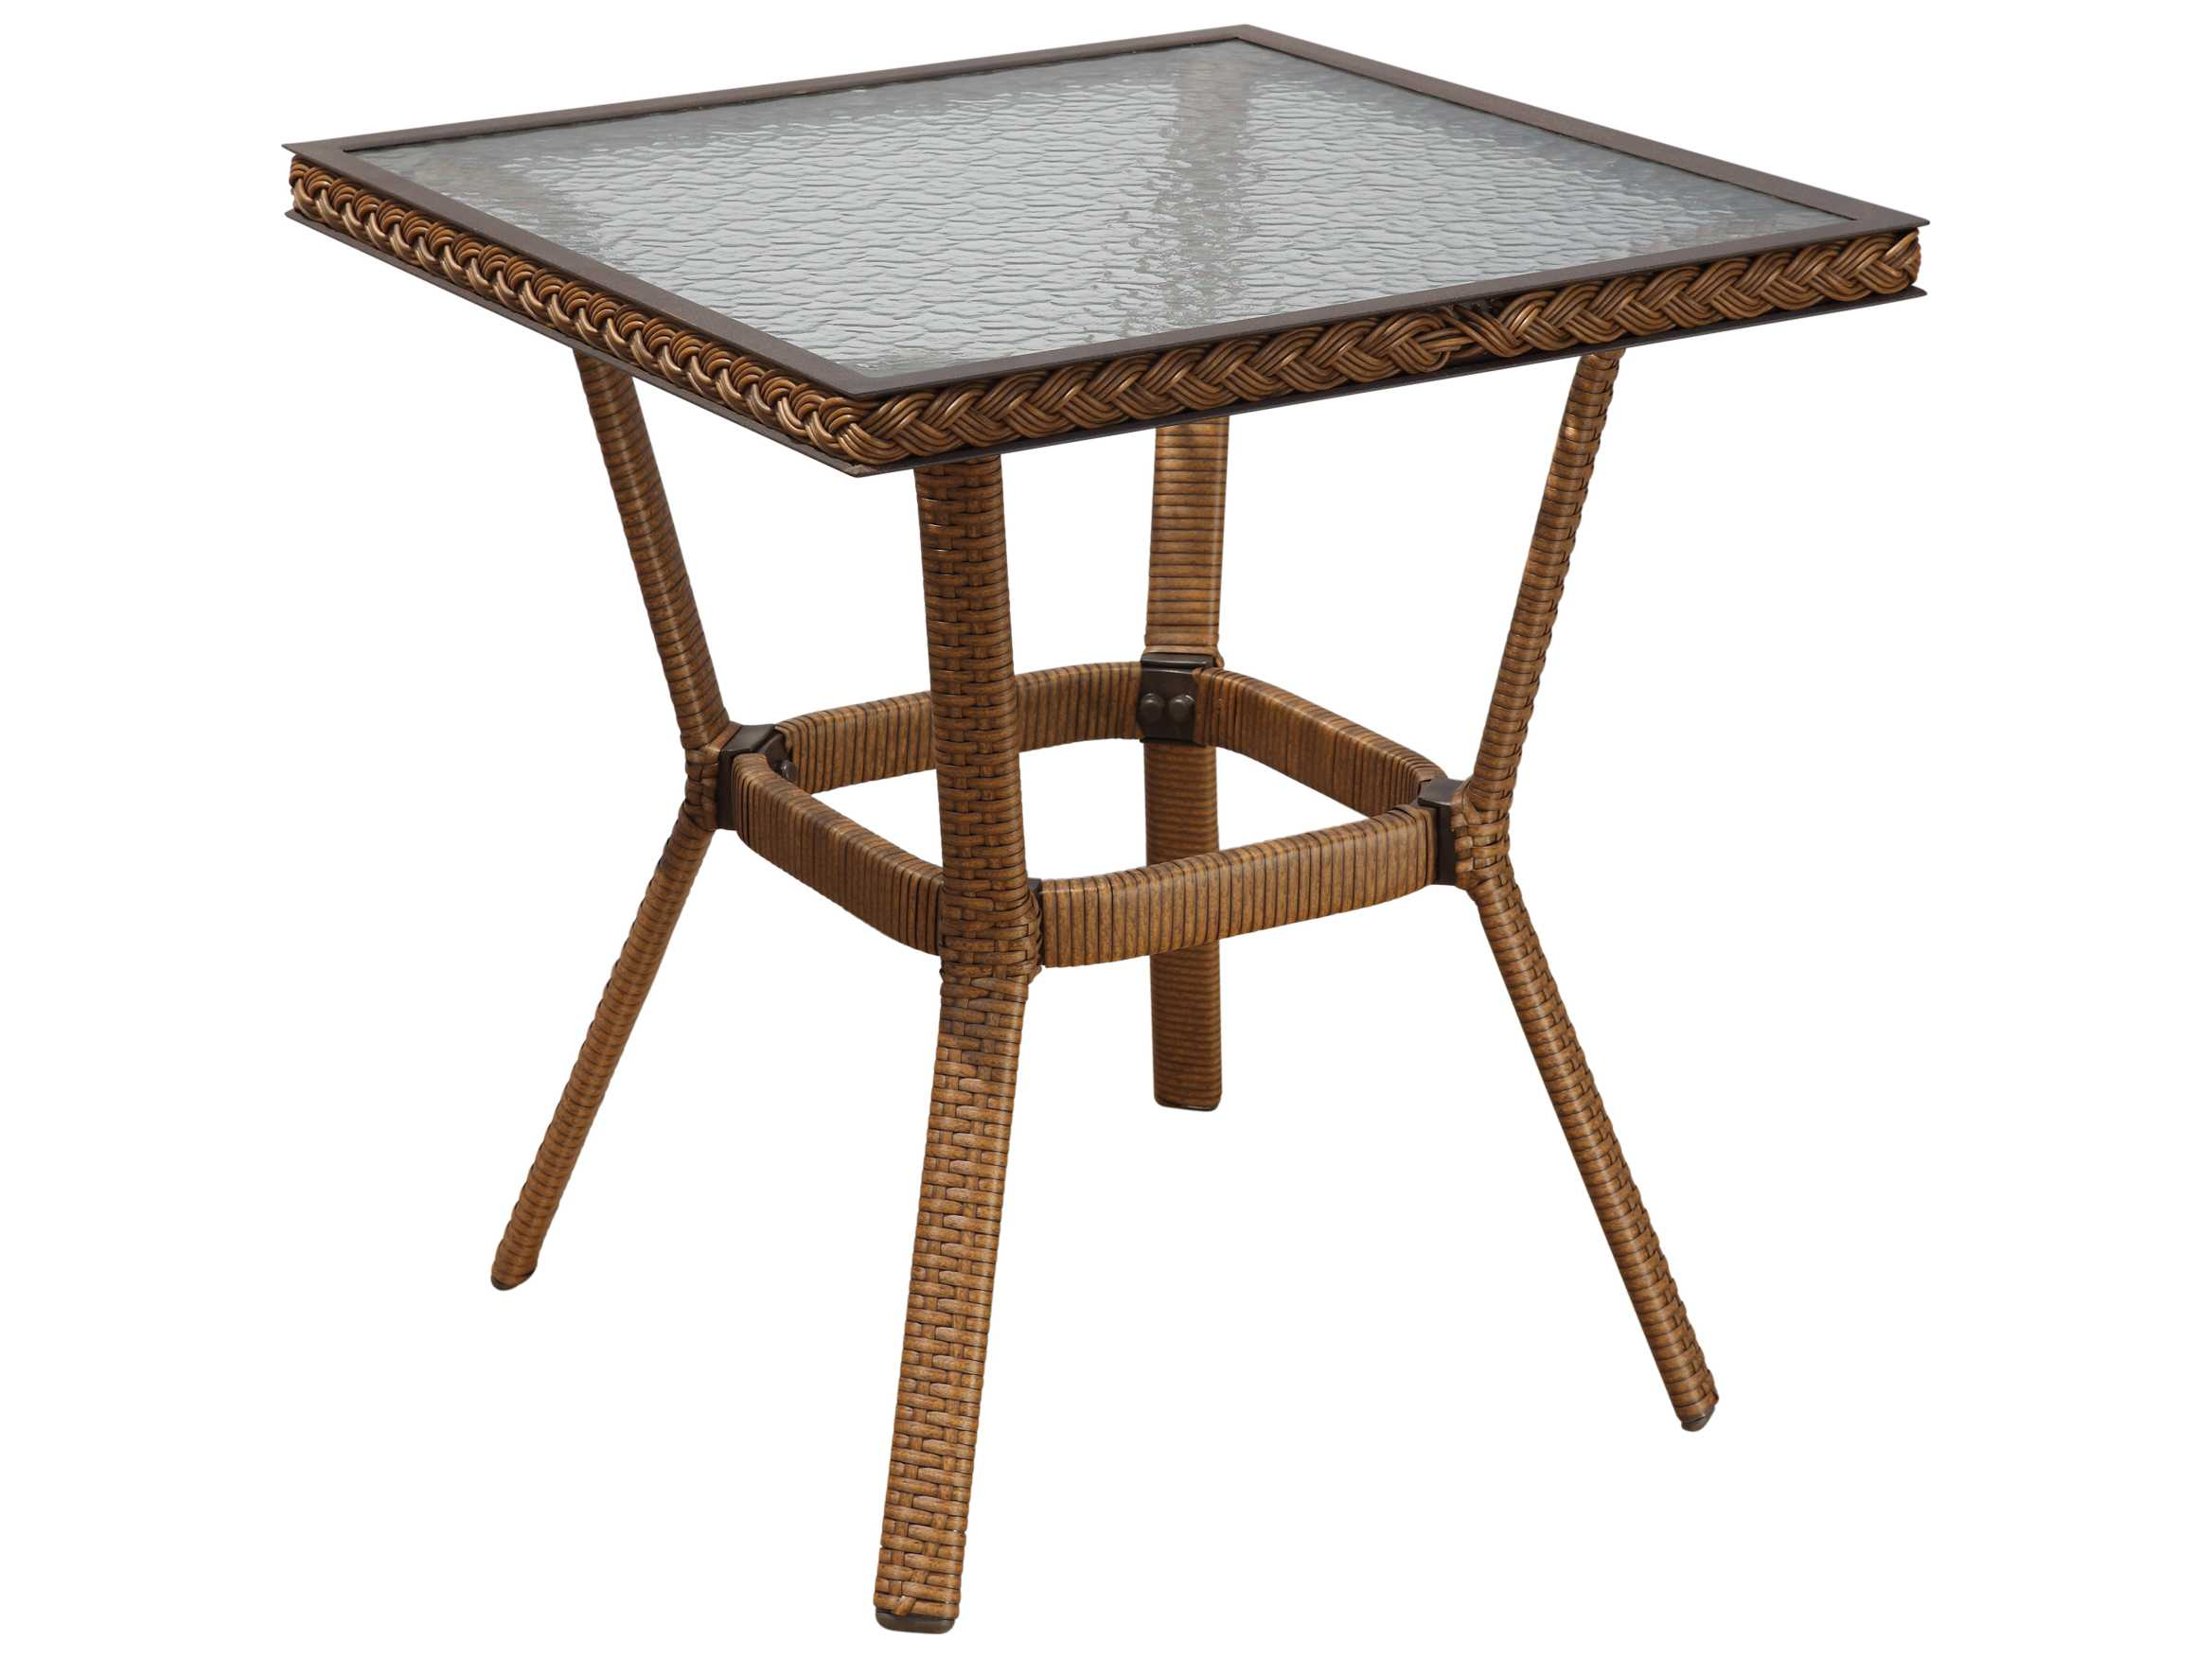 suncoast kona wicker rectangular glass end table hover zoom black gloss dining iron and antique outdoor furniture top patio tables easy nightstand plans living room stand